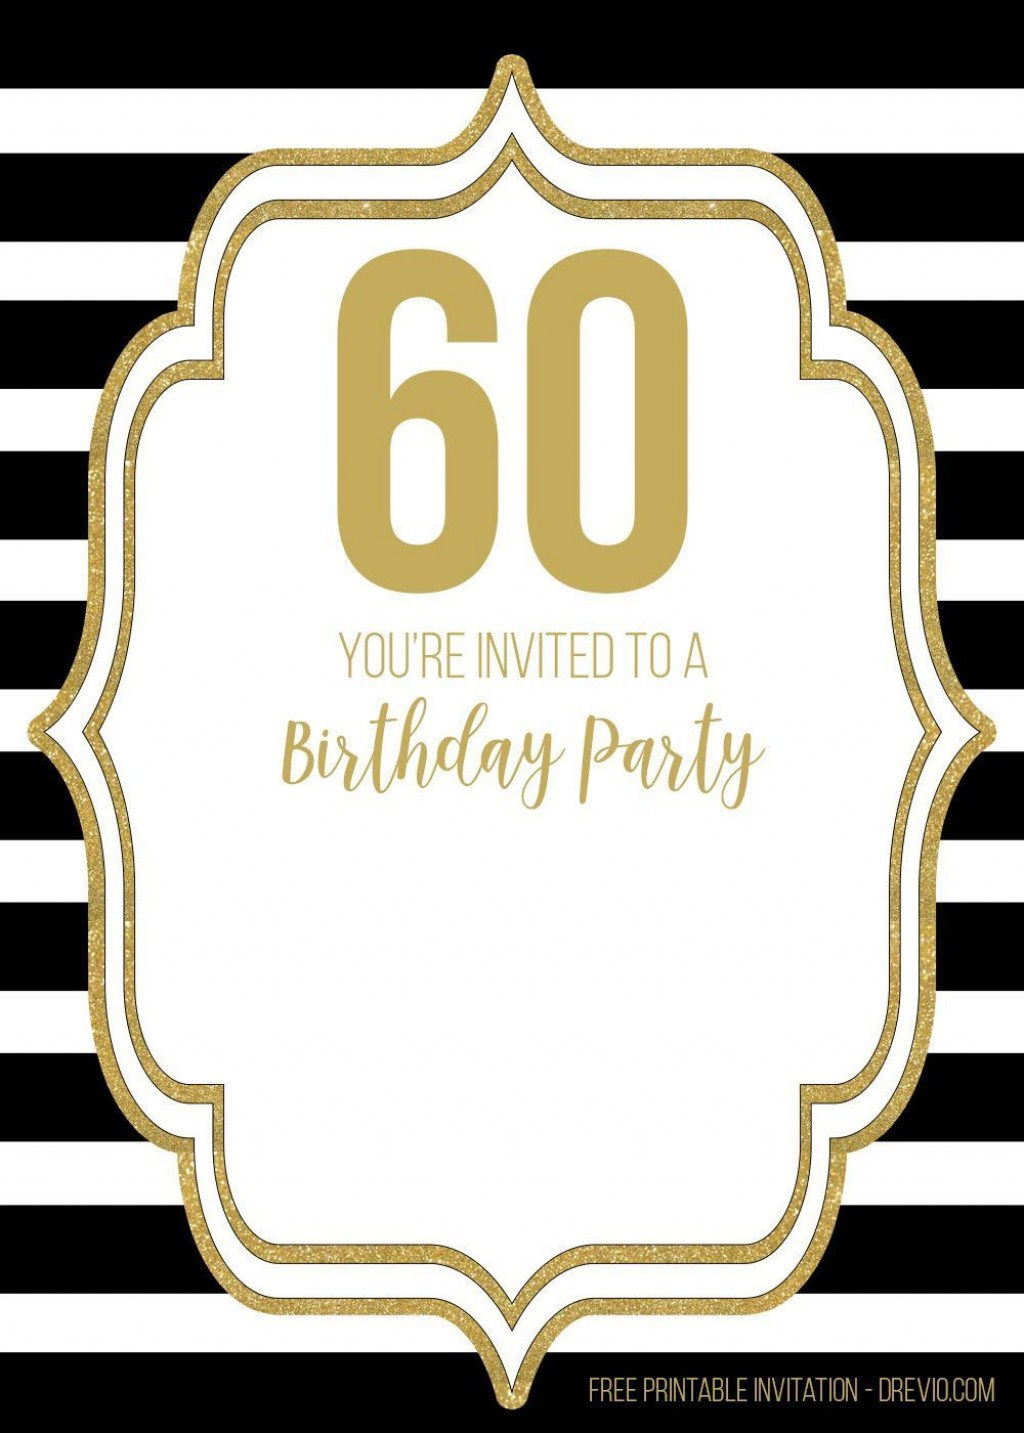 002 Fantastic Free 60th Birthday Invitation Template Highest Clarity  Templates Surprise Download For Word PartyLarge